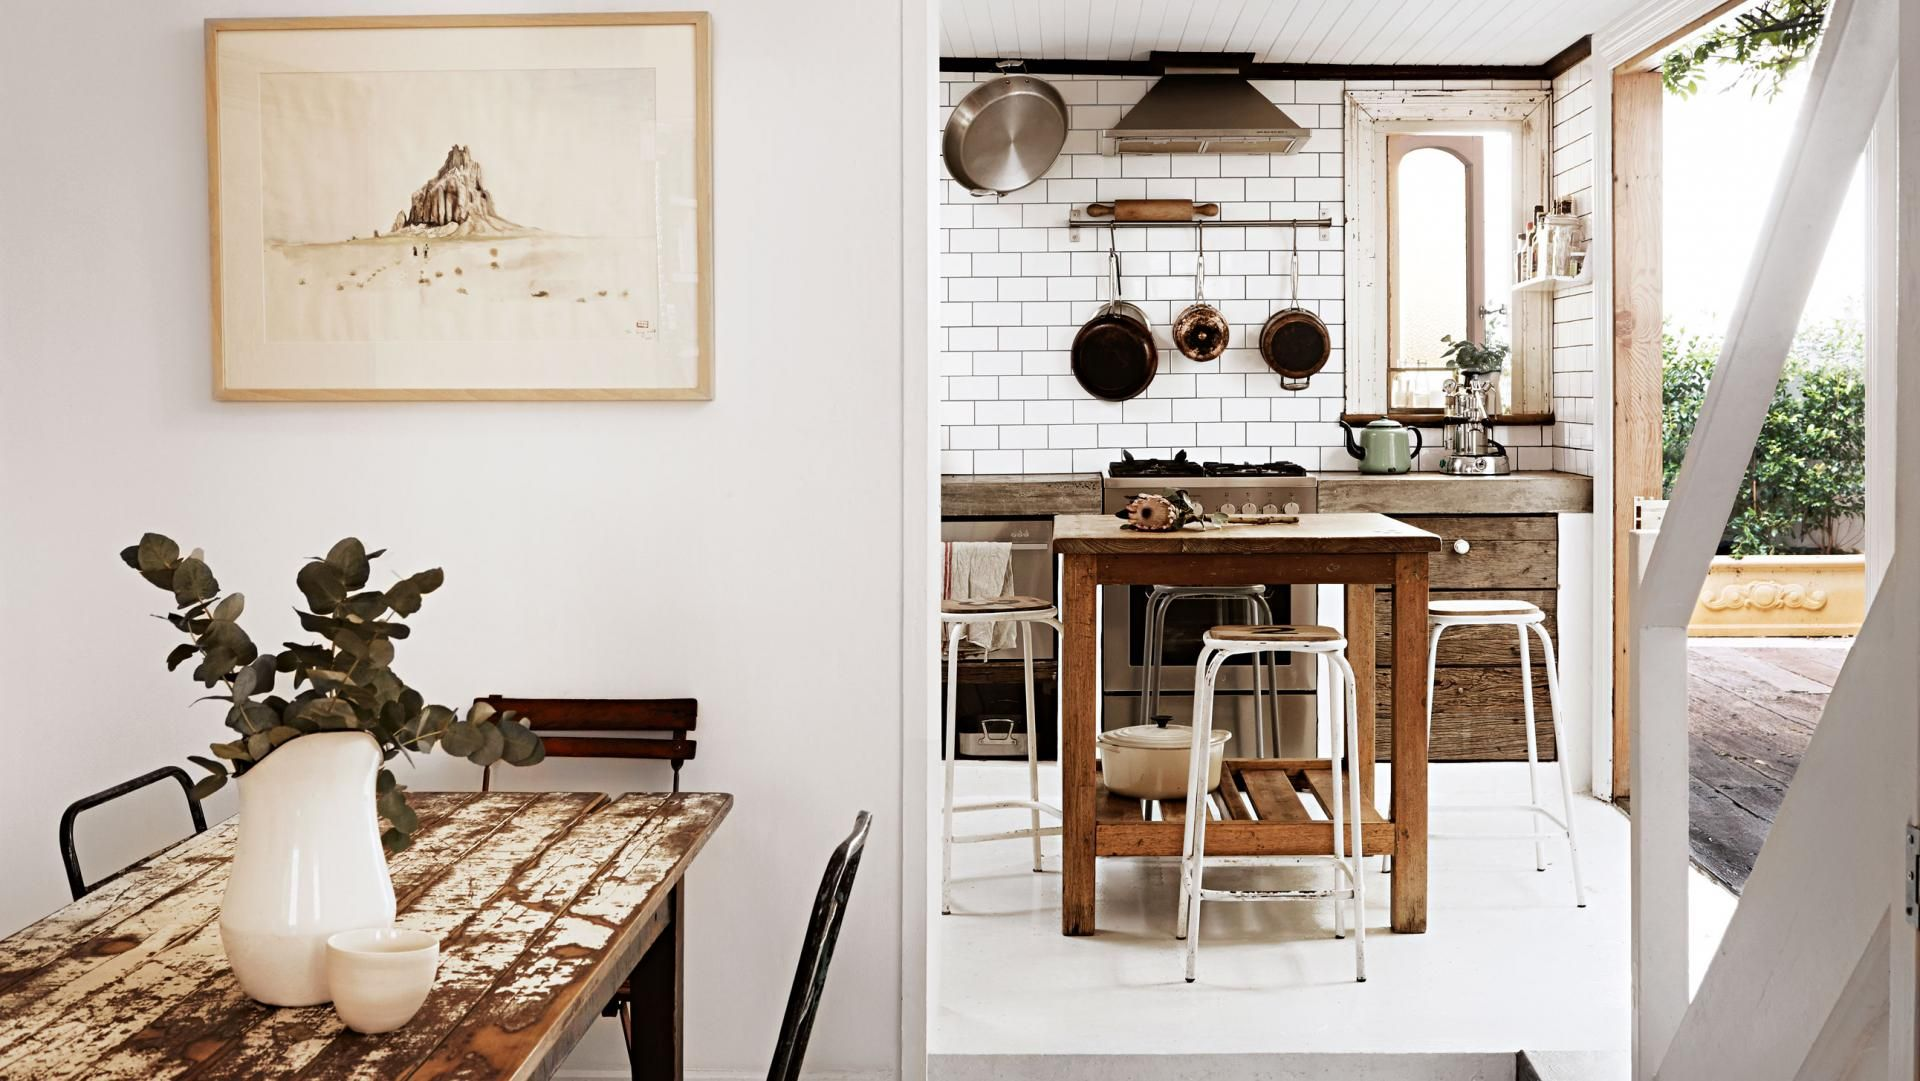 Industrial revival of a vintage cottage graphy by Fiona